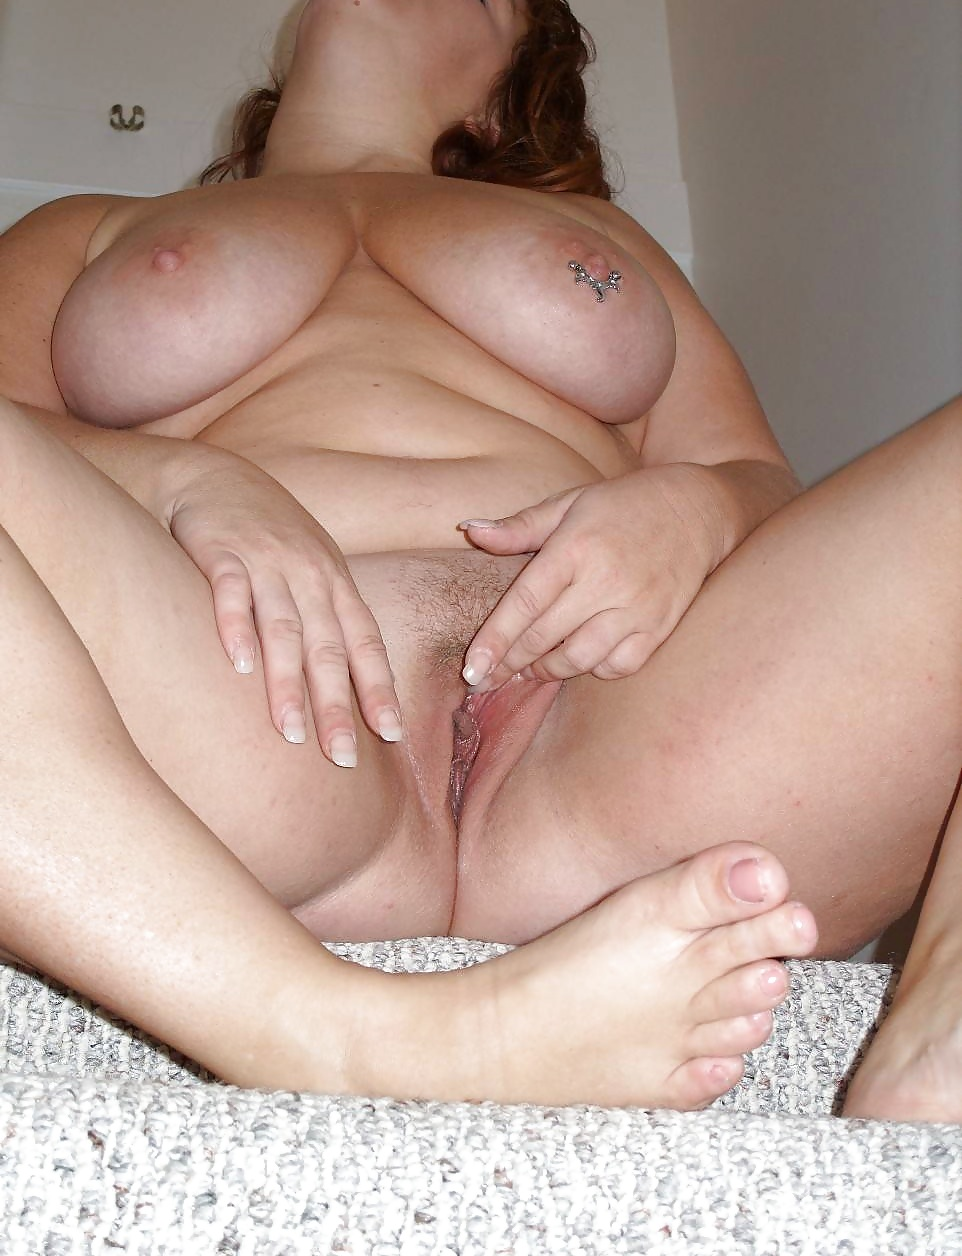 bbw red head raquel